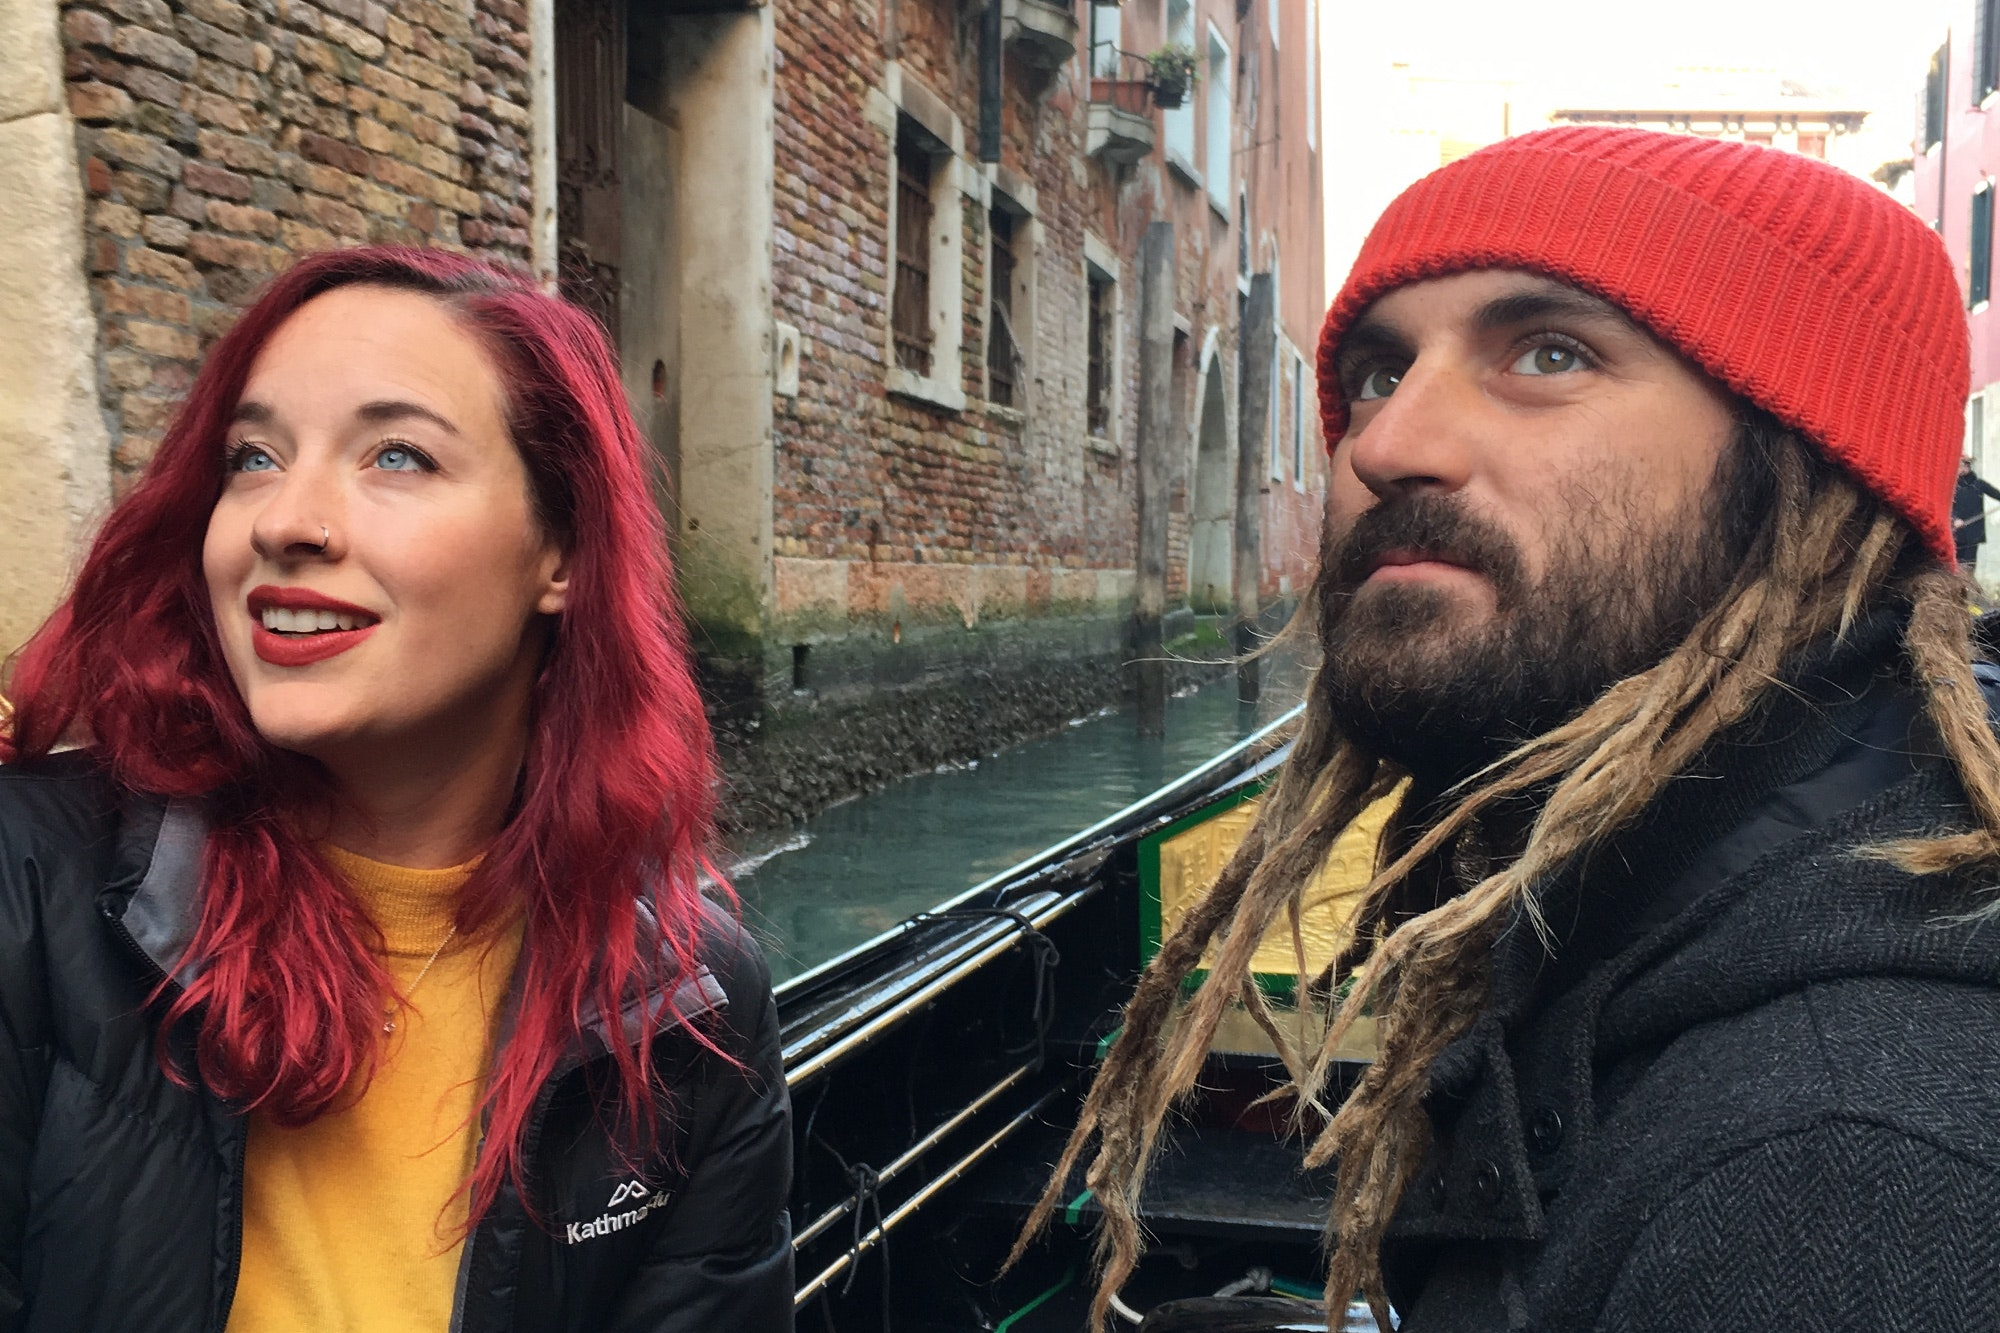 Pathfinders spotlight: Kelsey and Peter, Travelin' Fools